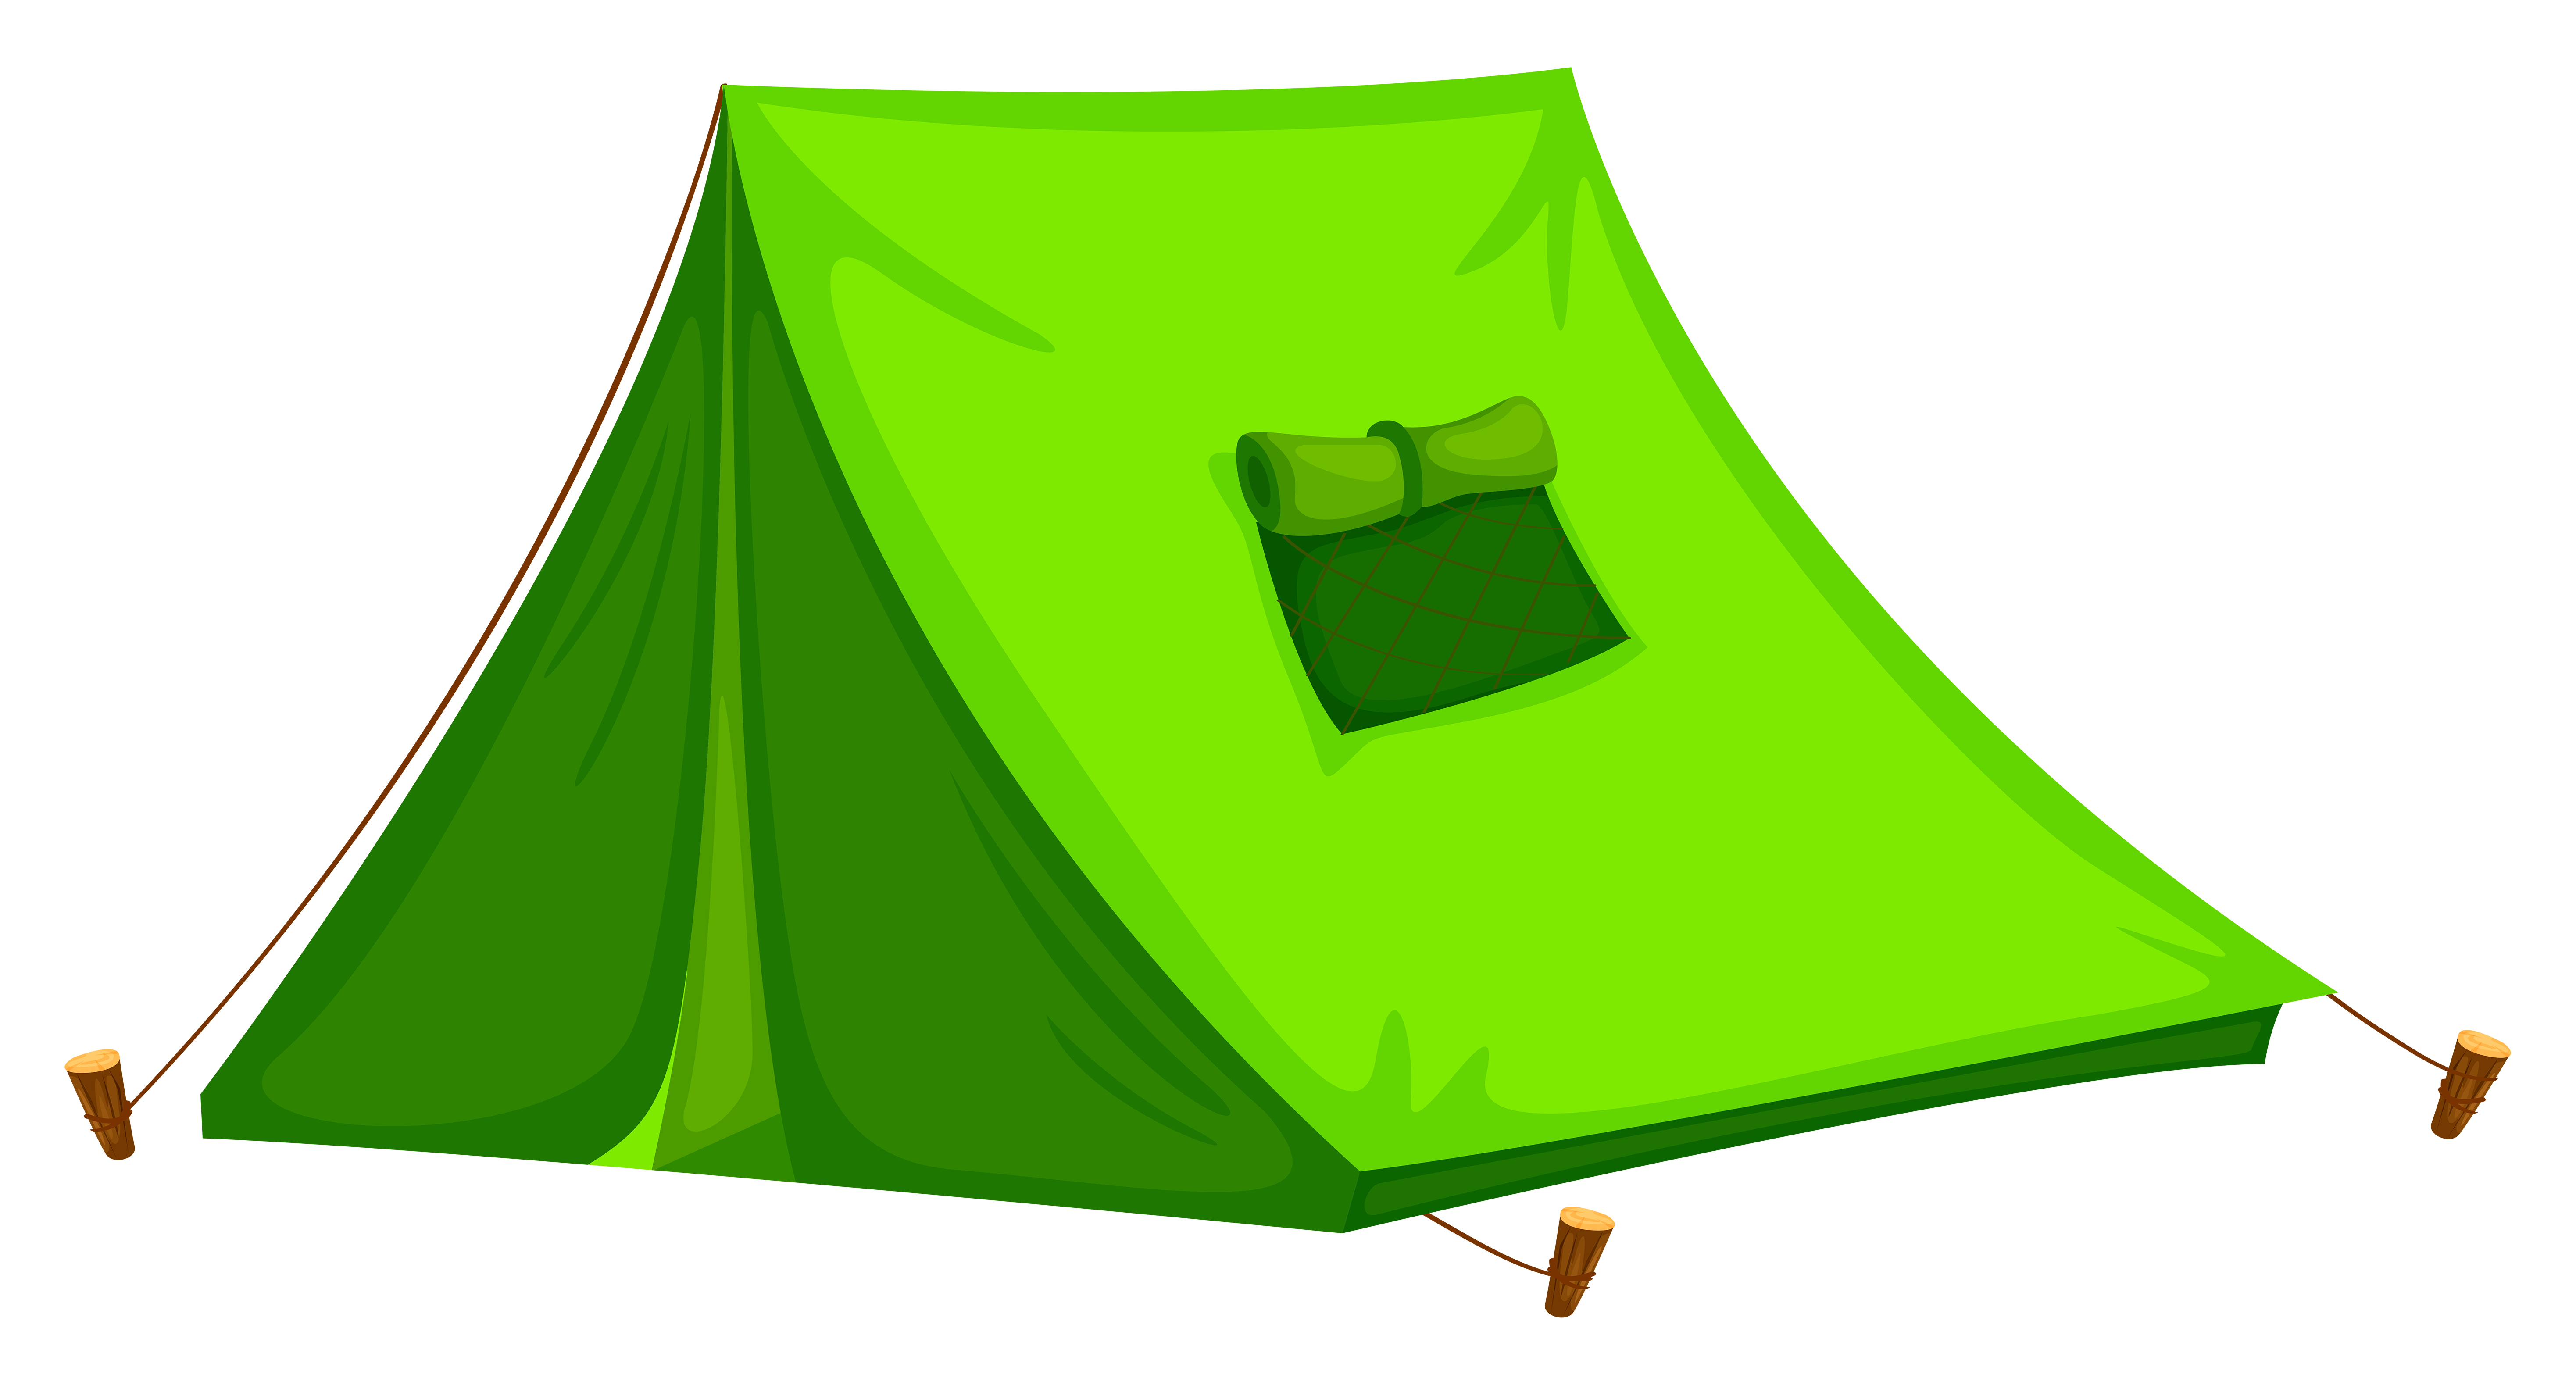 Camp vector white tent. Camping clipart at getdrawings